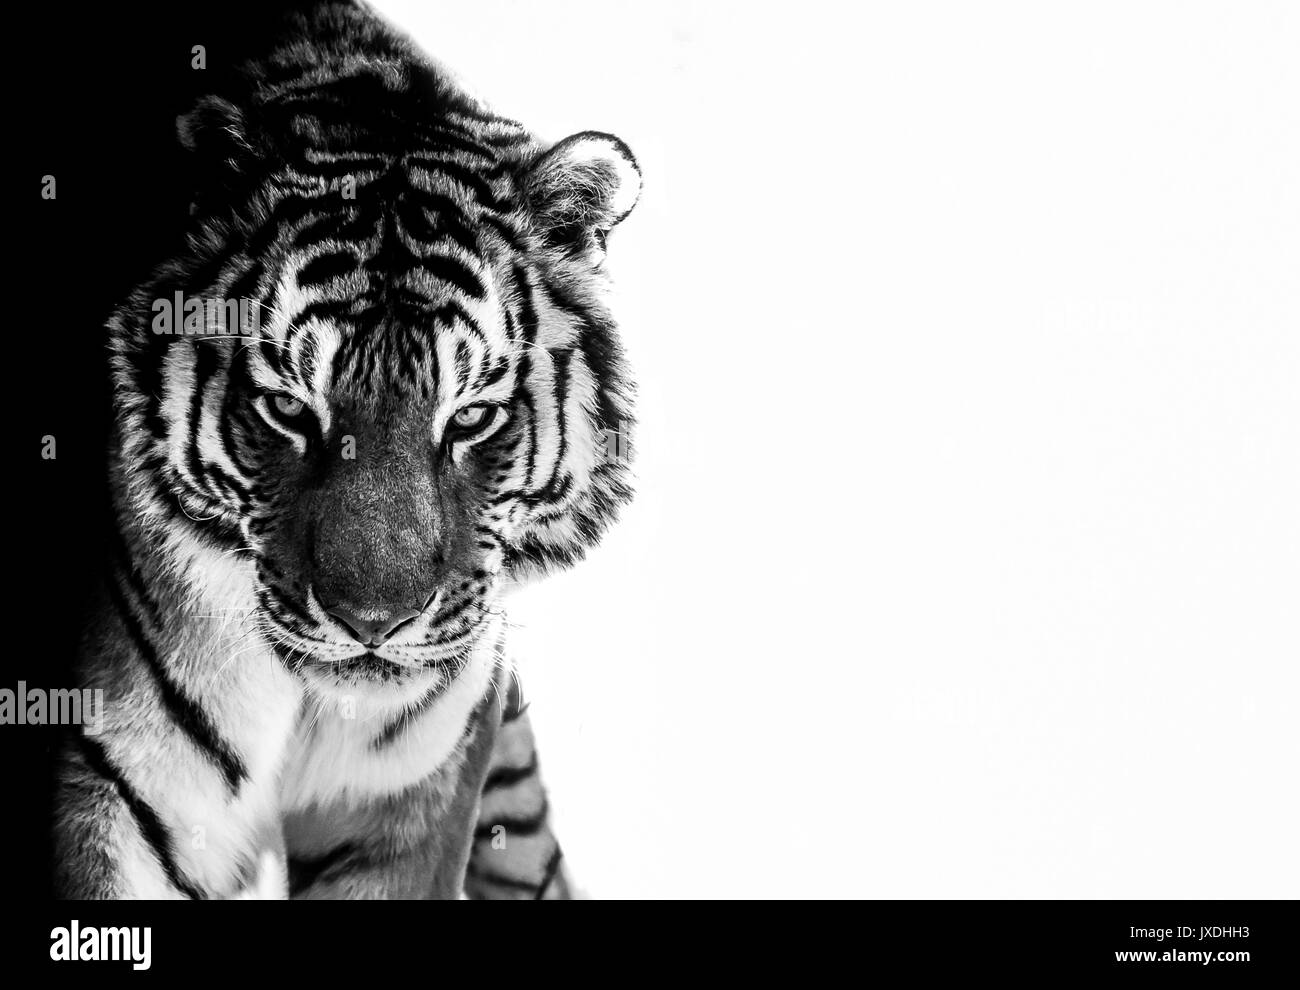 black and white photo edited  tiger eyes contact look at camera - Stock Image